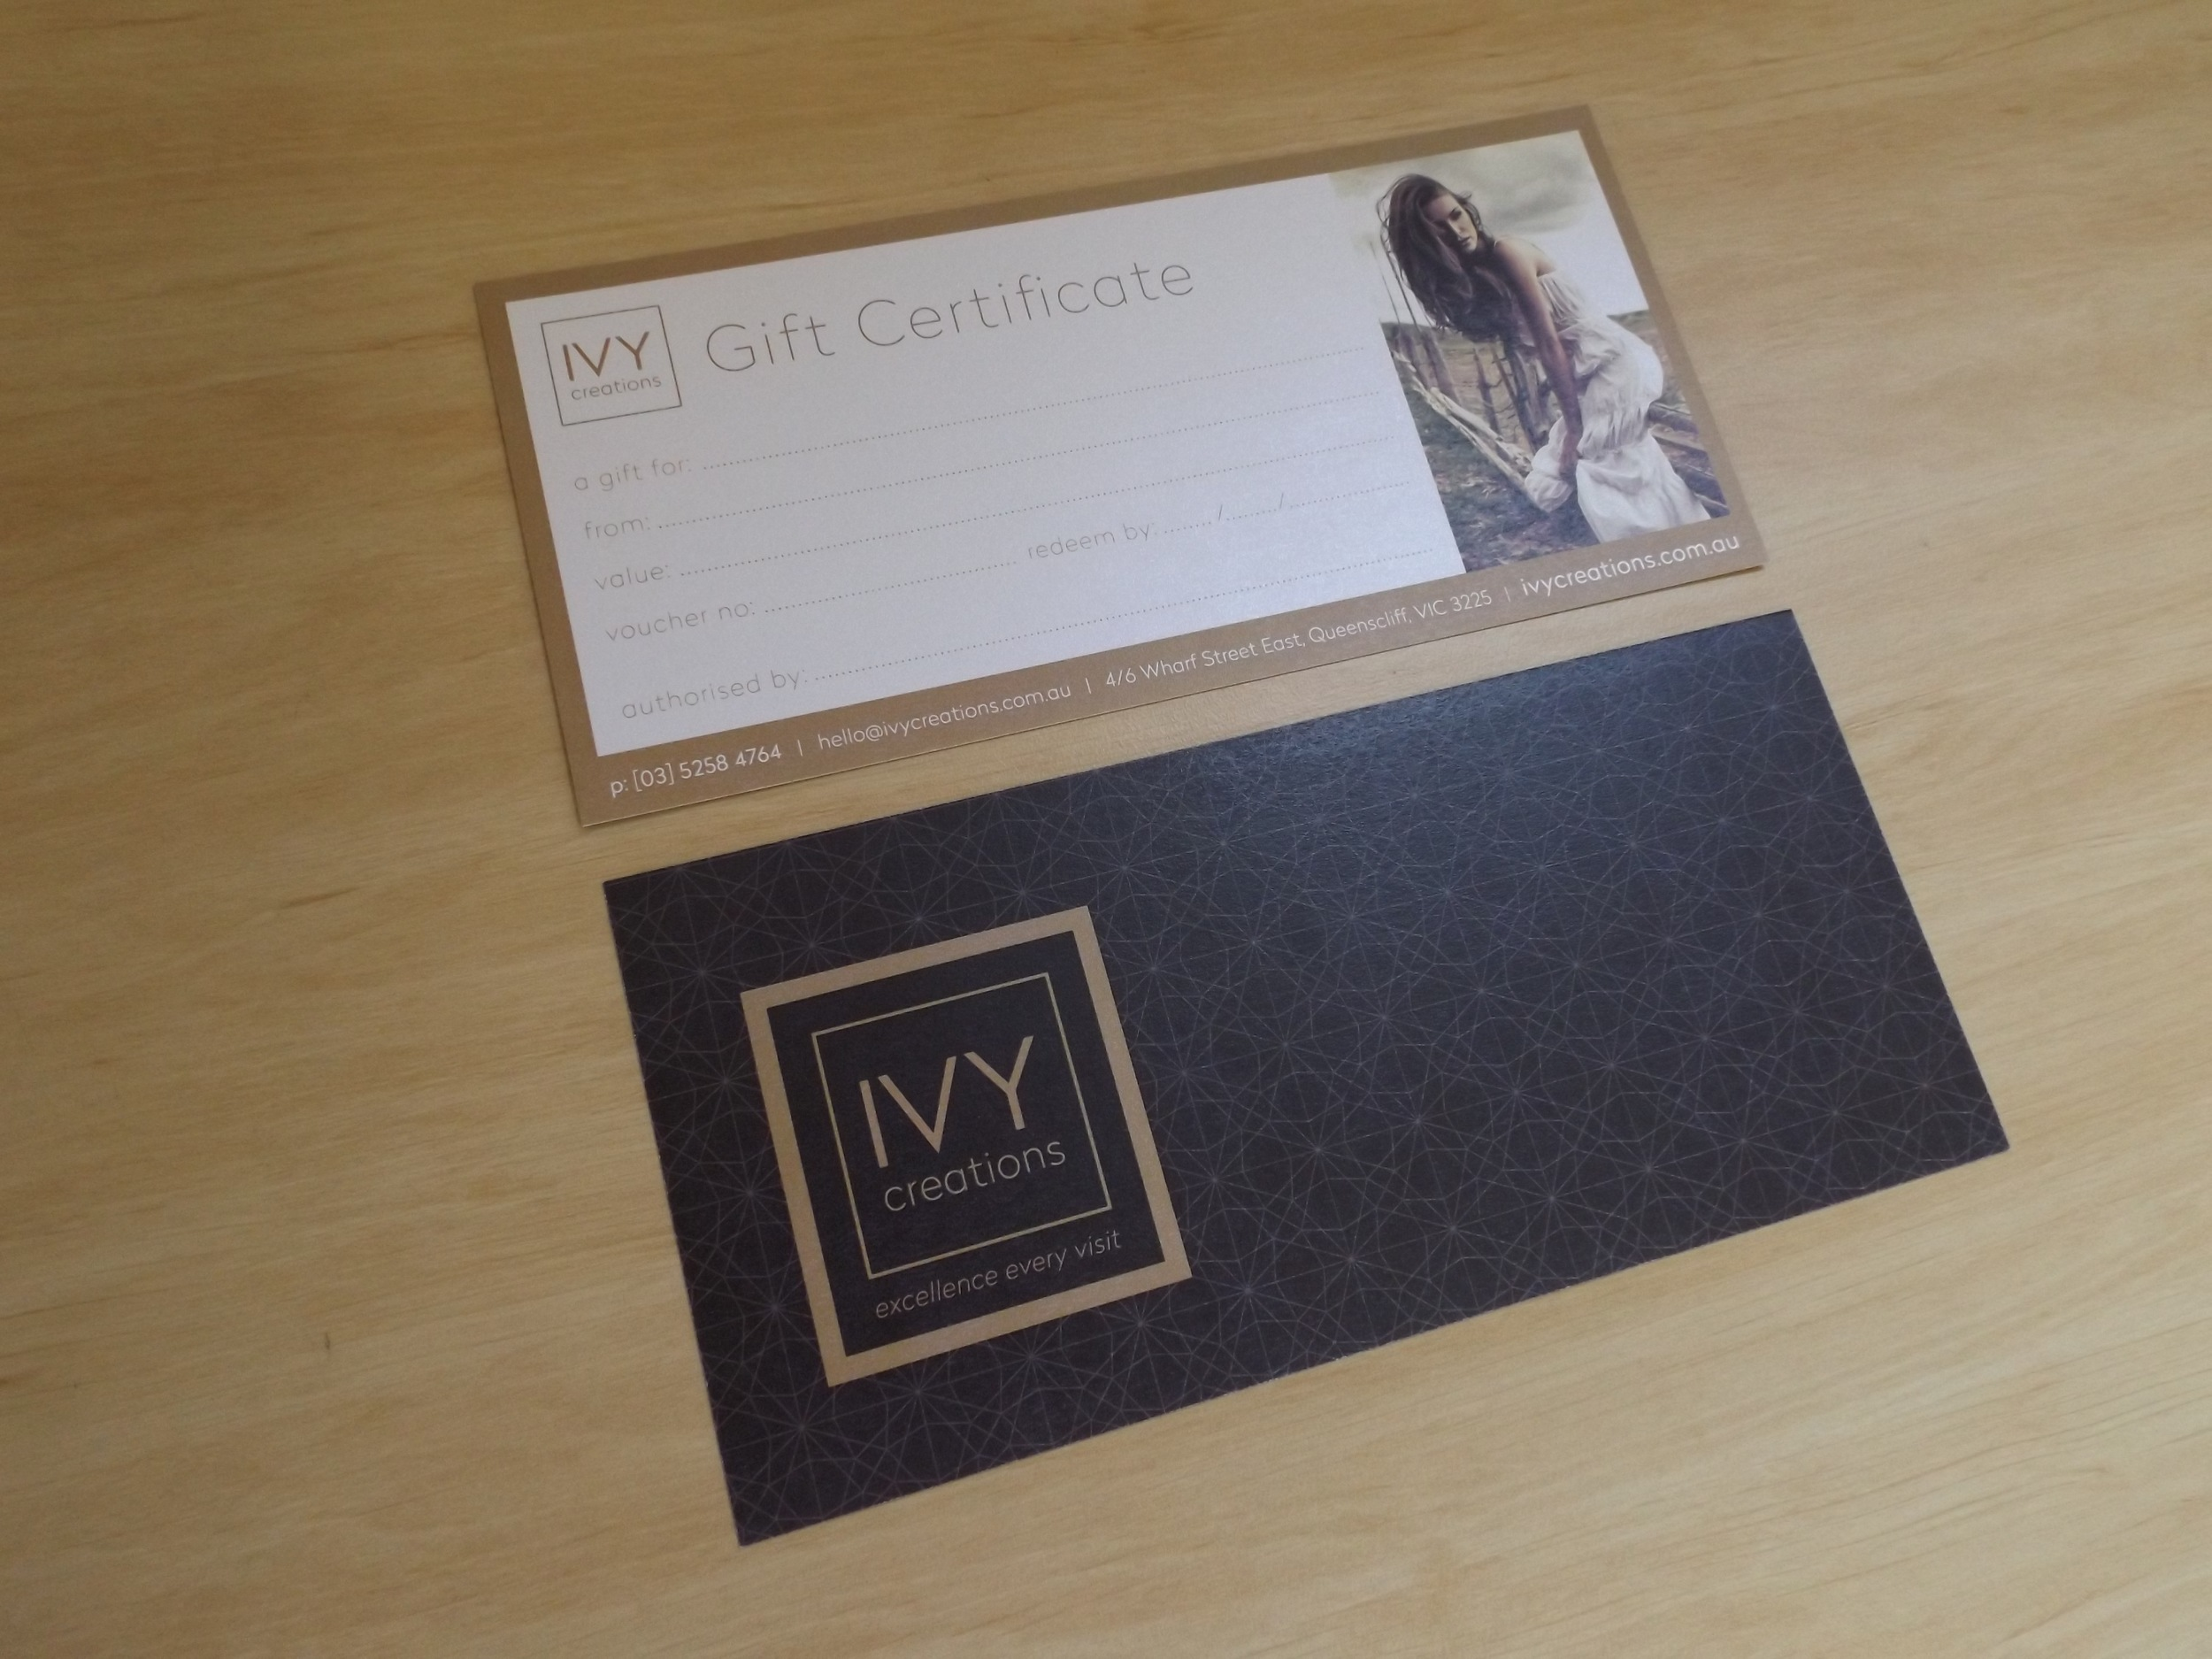 IVY CREATIONS: Rebranding. Scope of work included: Logo Design, Appointment Cards and Stationery Suite, Signage, Brochures and Gift Voucher.